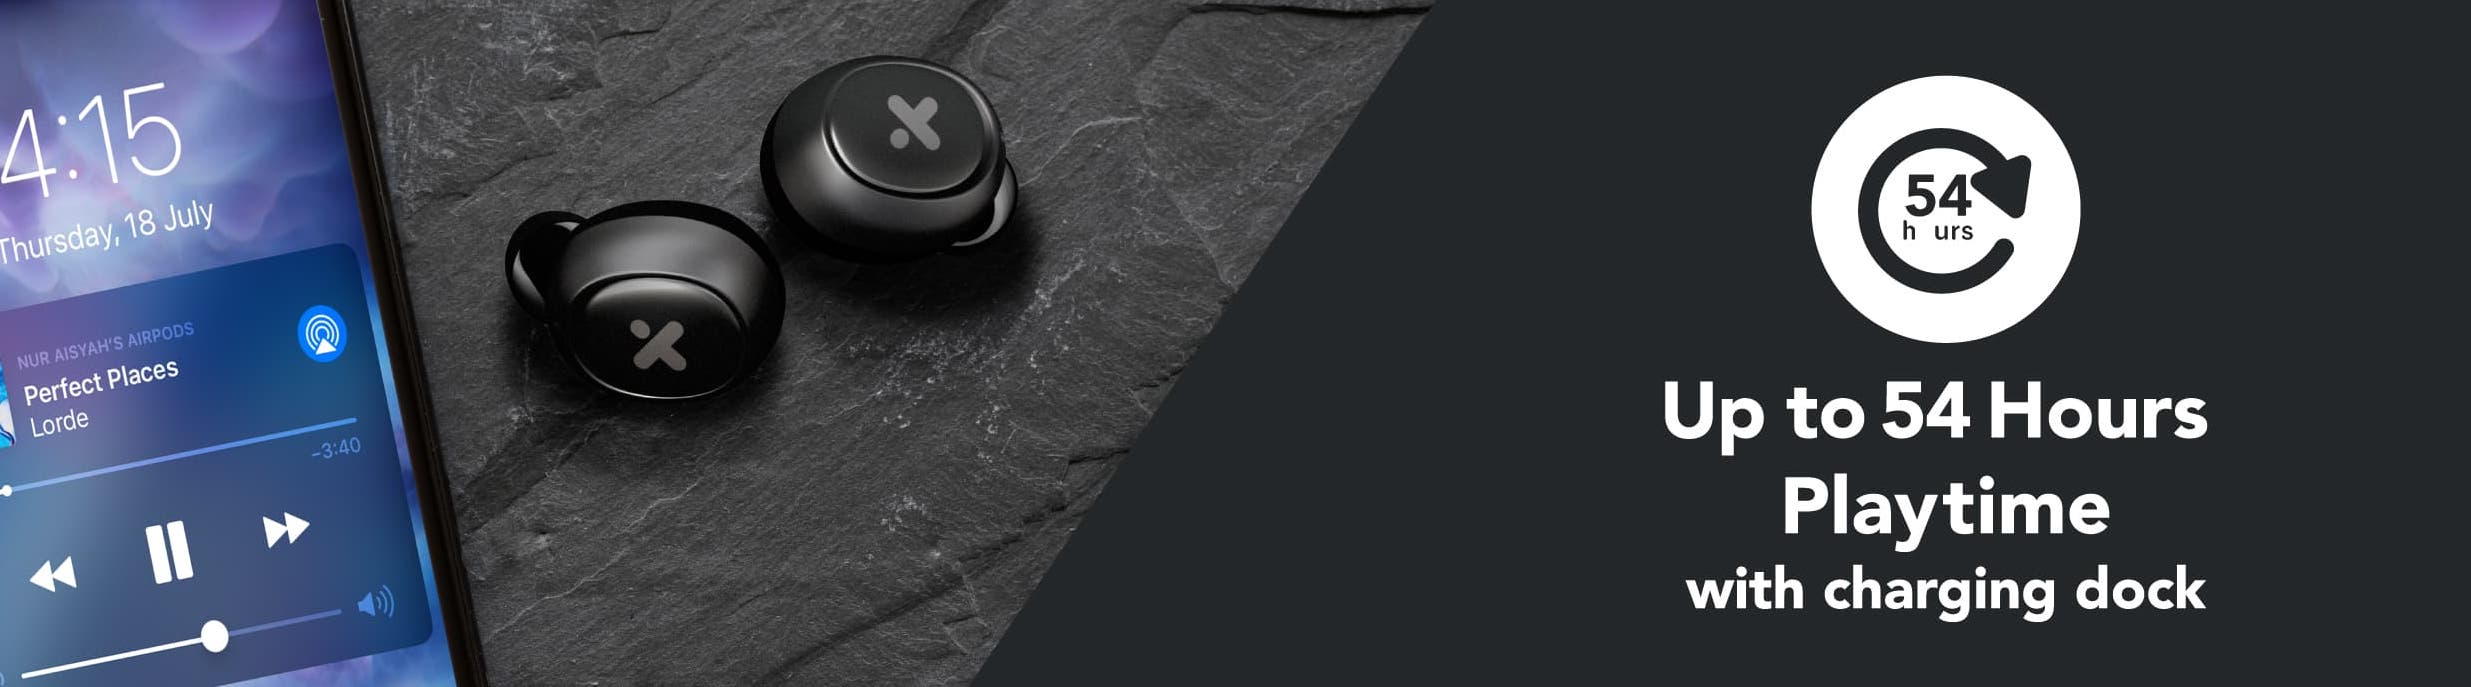 Liberty+-True-Wireless-Earbuds-Up-to-54-hours-playtime